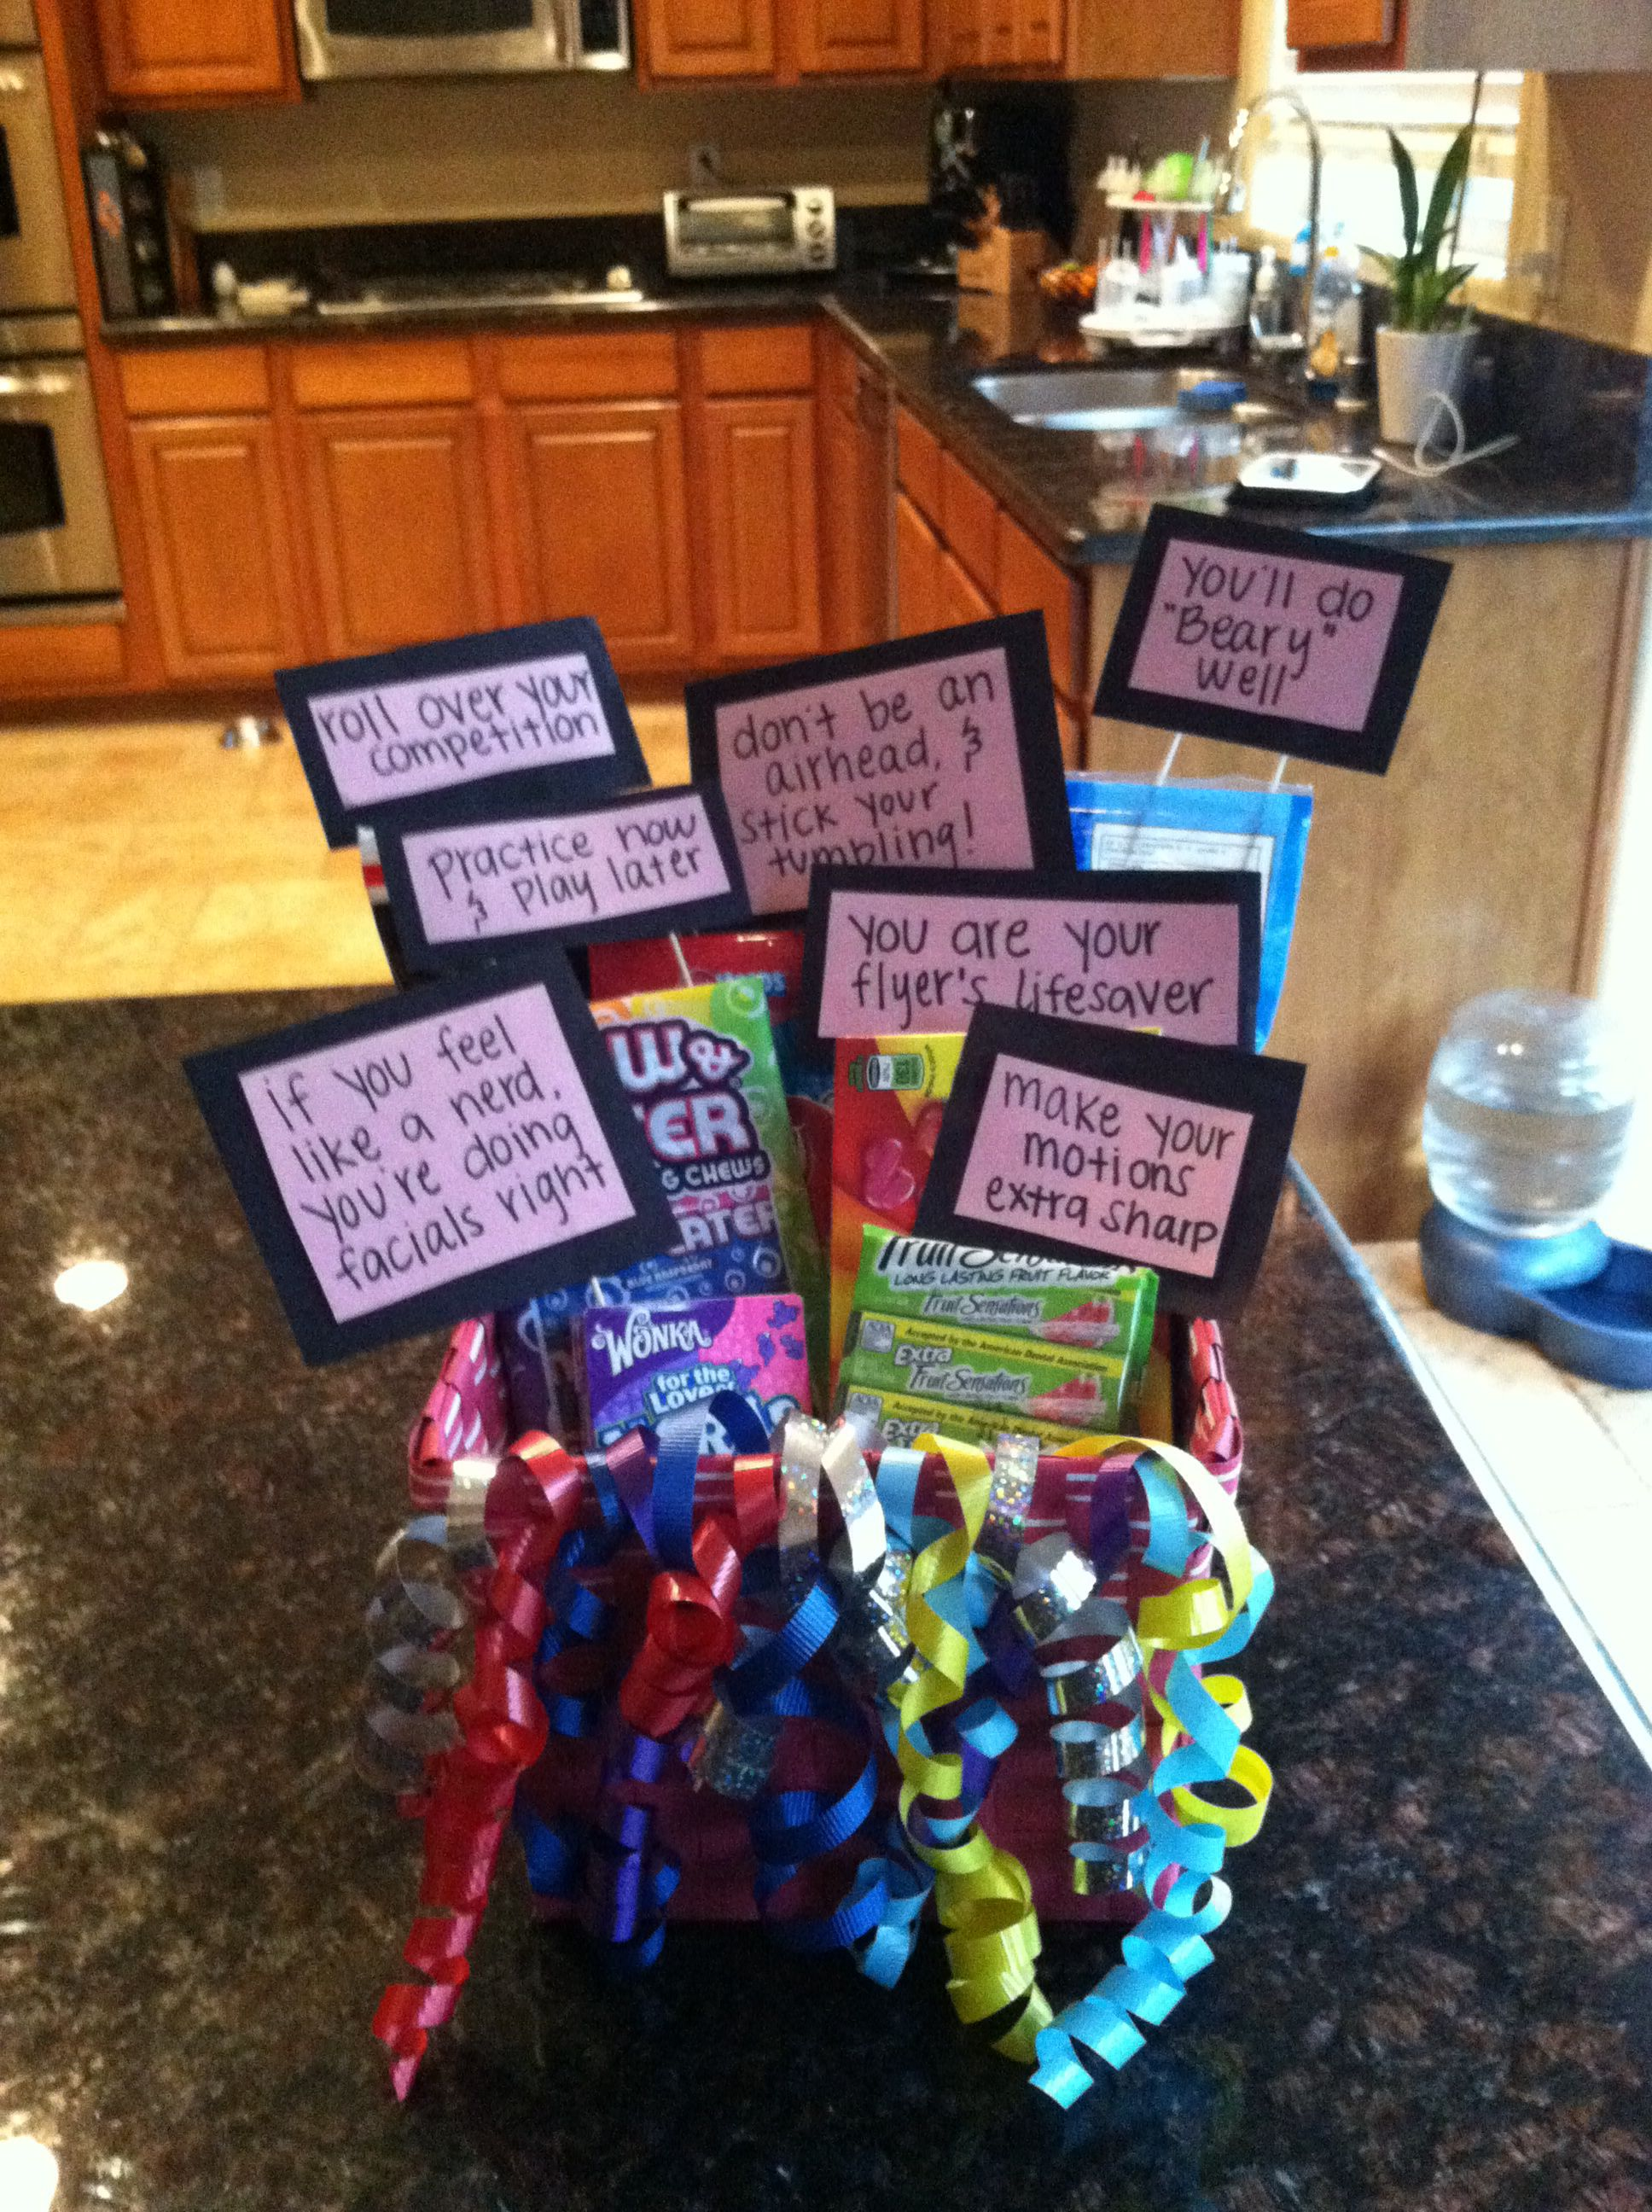 My cheer lil sis before competition gift! #cheerleading #gifts #diy